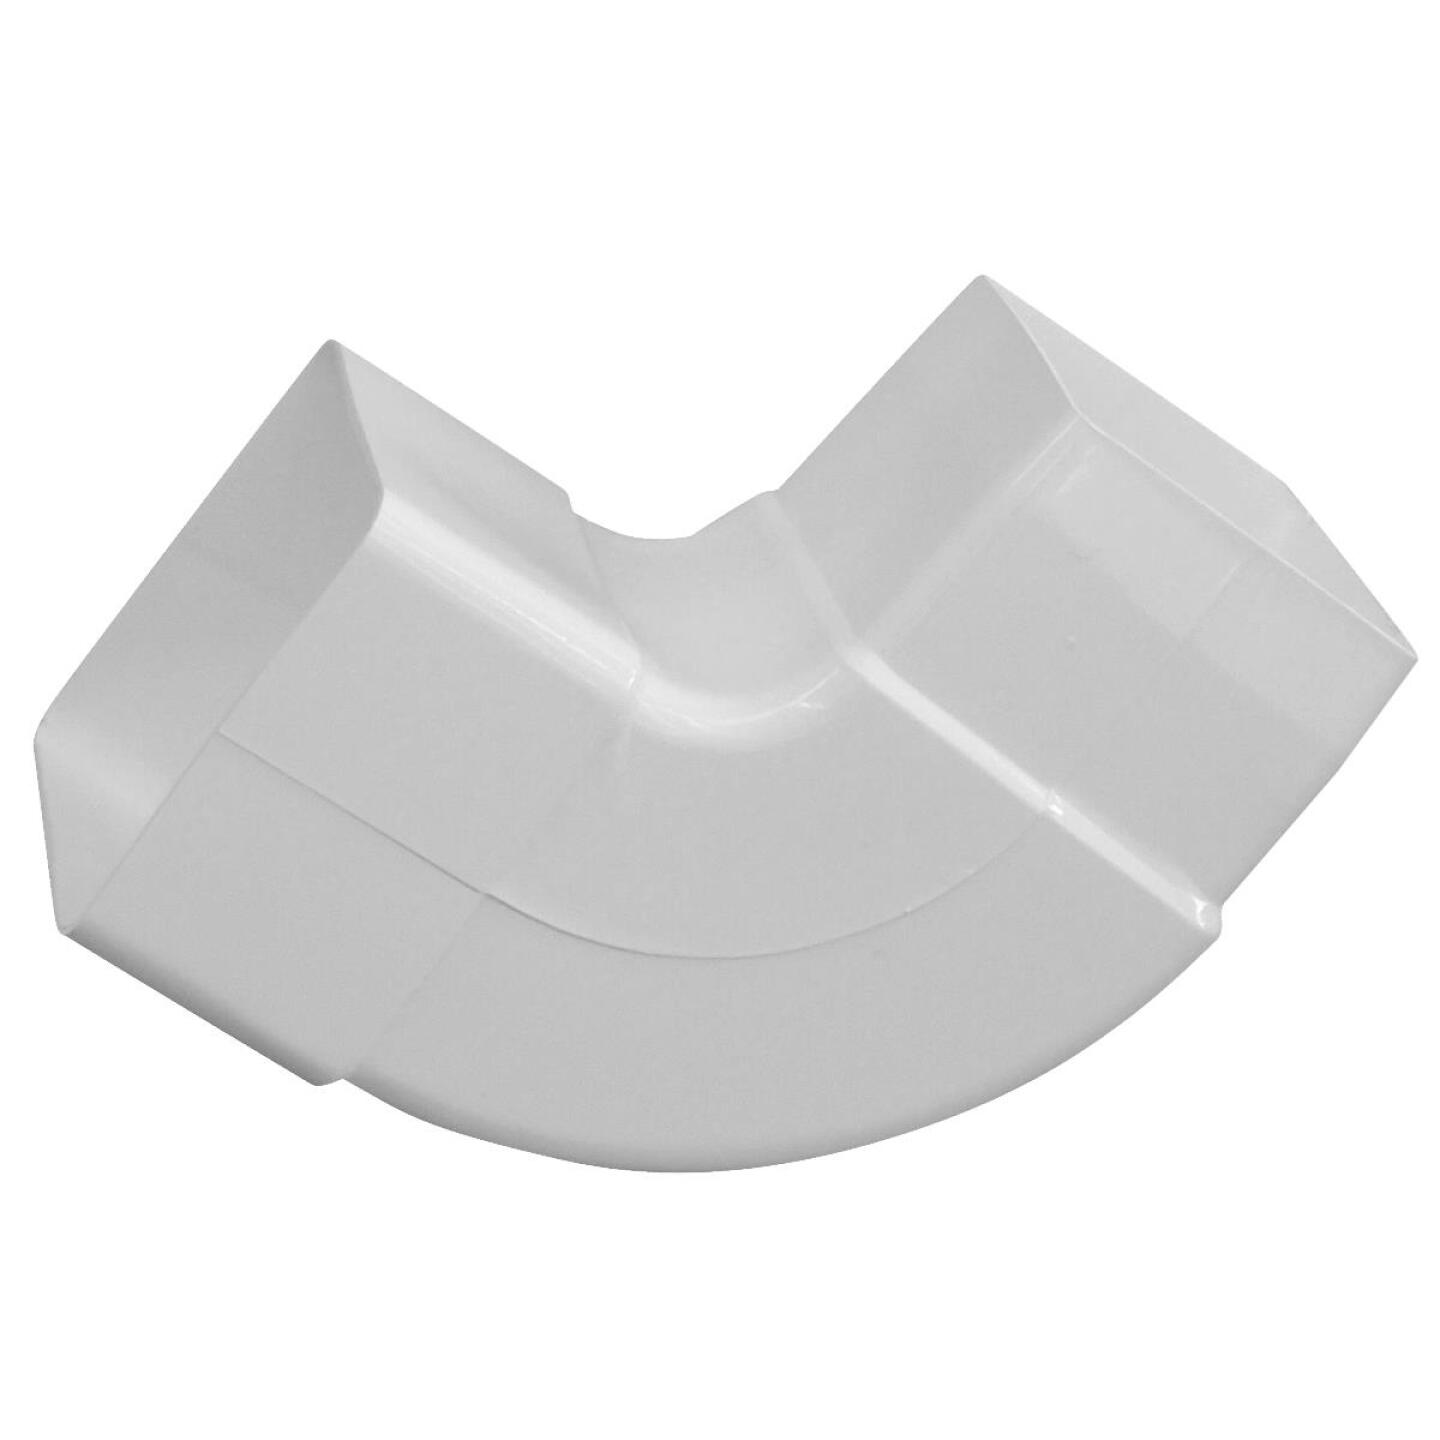 Raingo 2-1/2 In. Vinyl White Front or Side Downspout Elbow Image 1